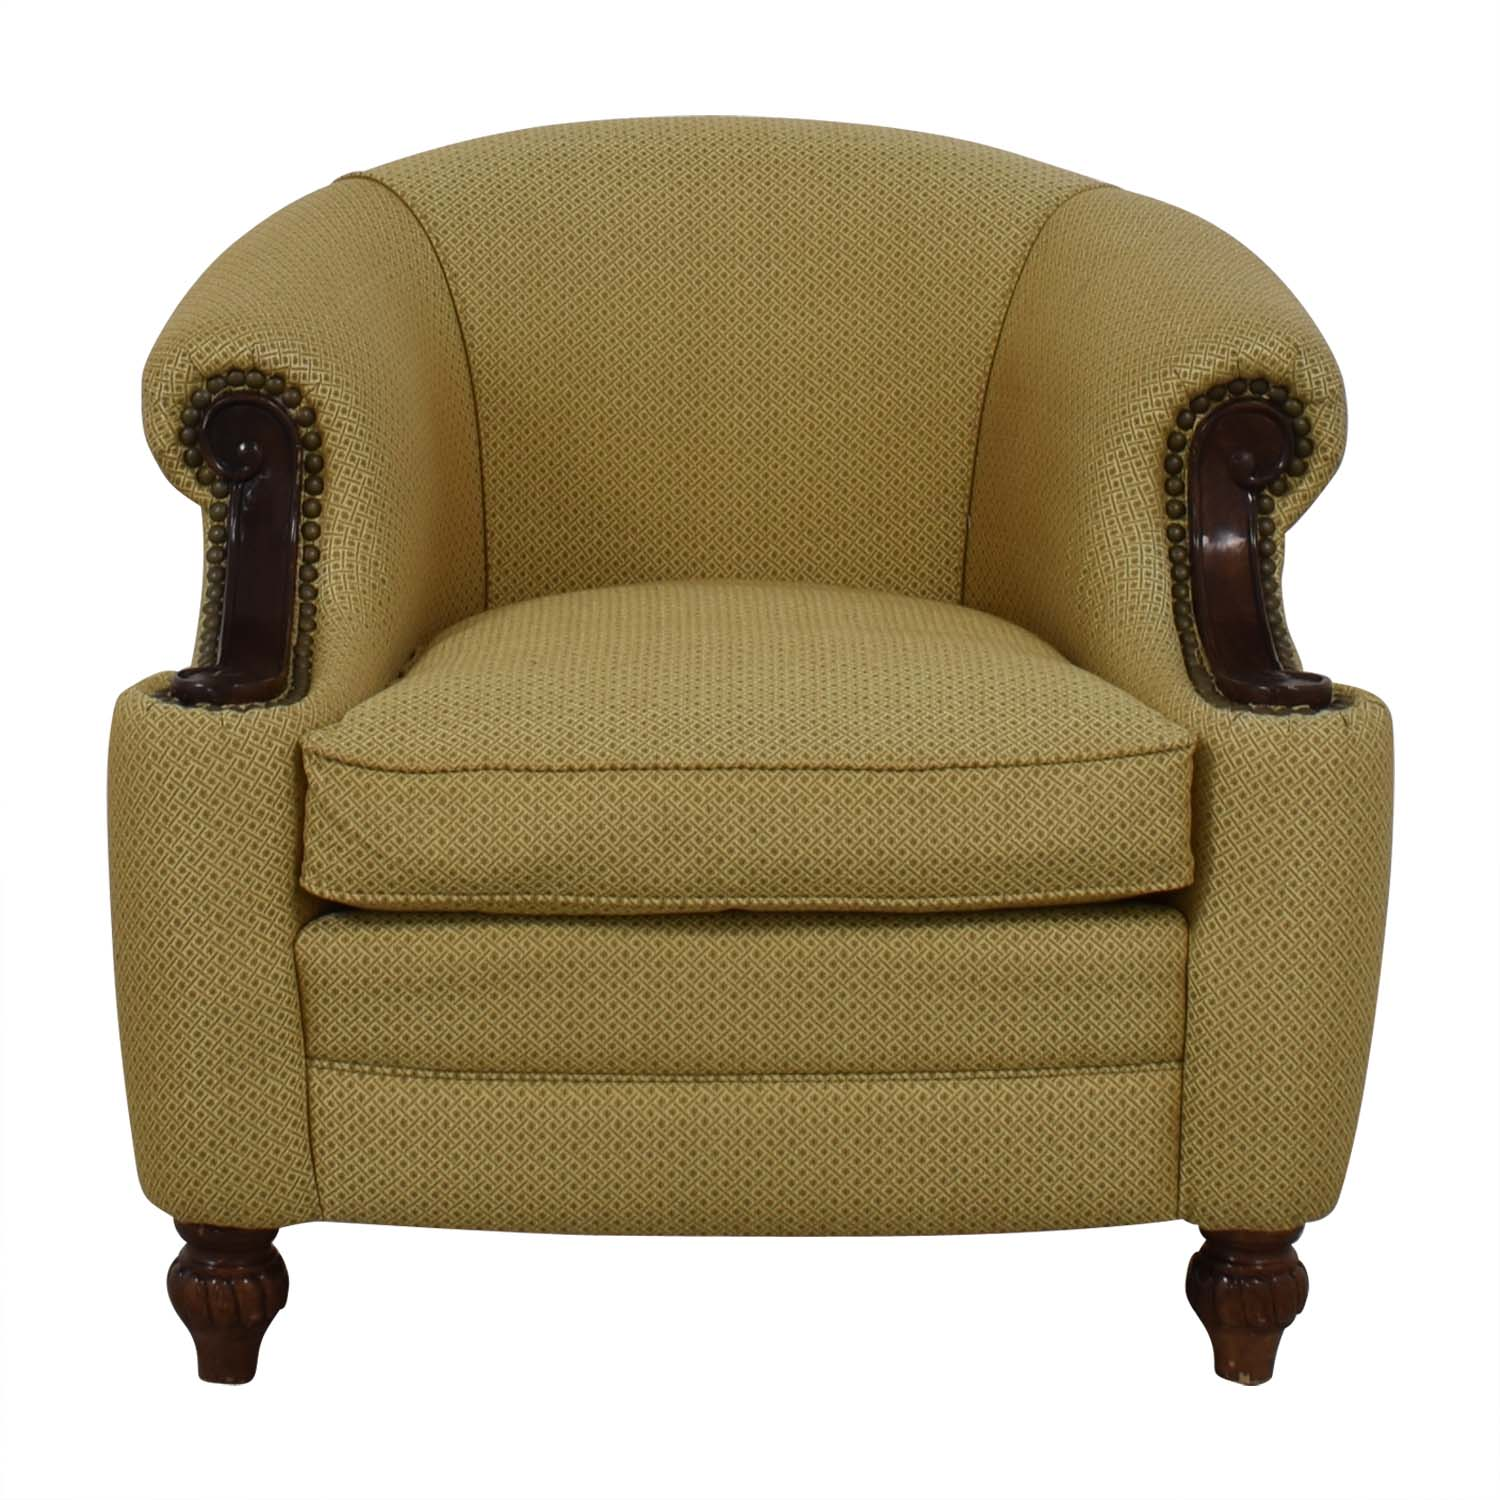 buy Kincaid Furniture Studded Classic Custom Accent Chair Kincaid Furniture Chairs